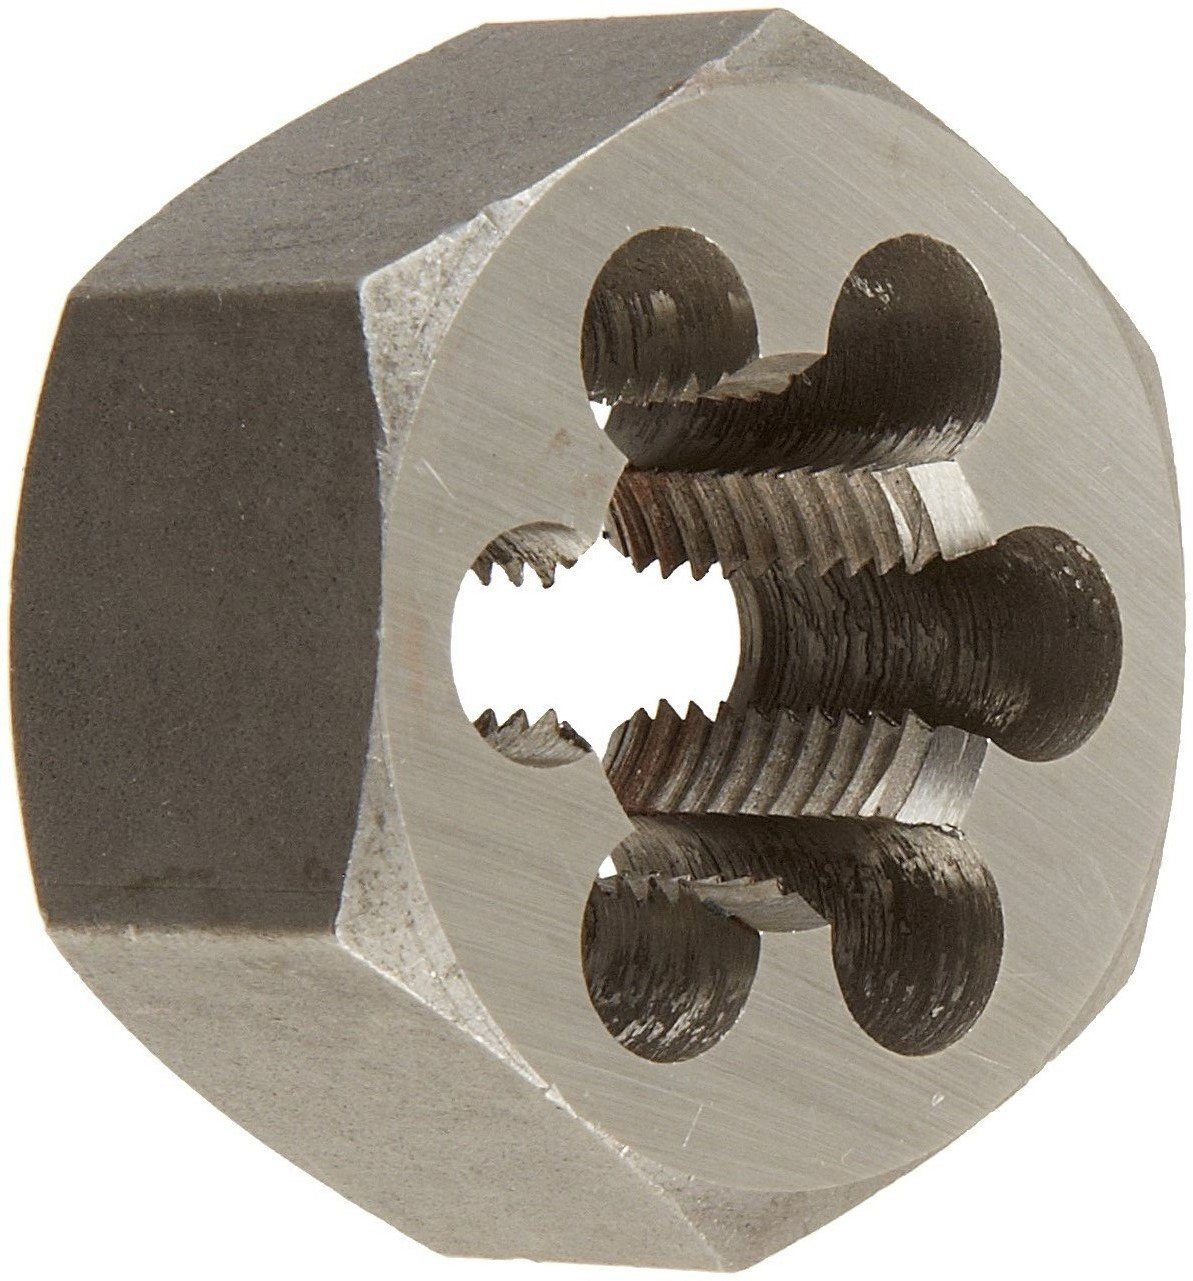 Drill America DWT High-Speed Steel Hex Threading Die (1/4' - 1-1/2'), Uncoated (Bright) Finish